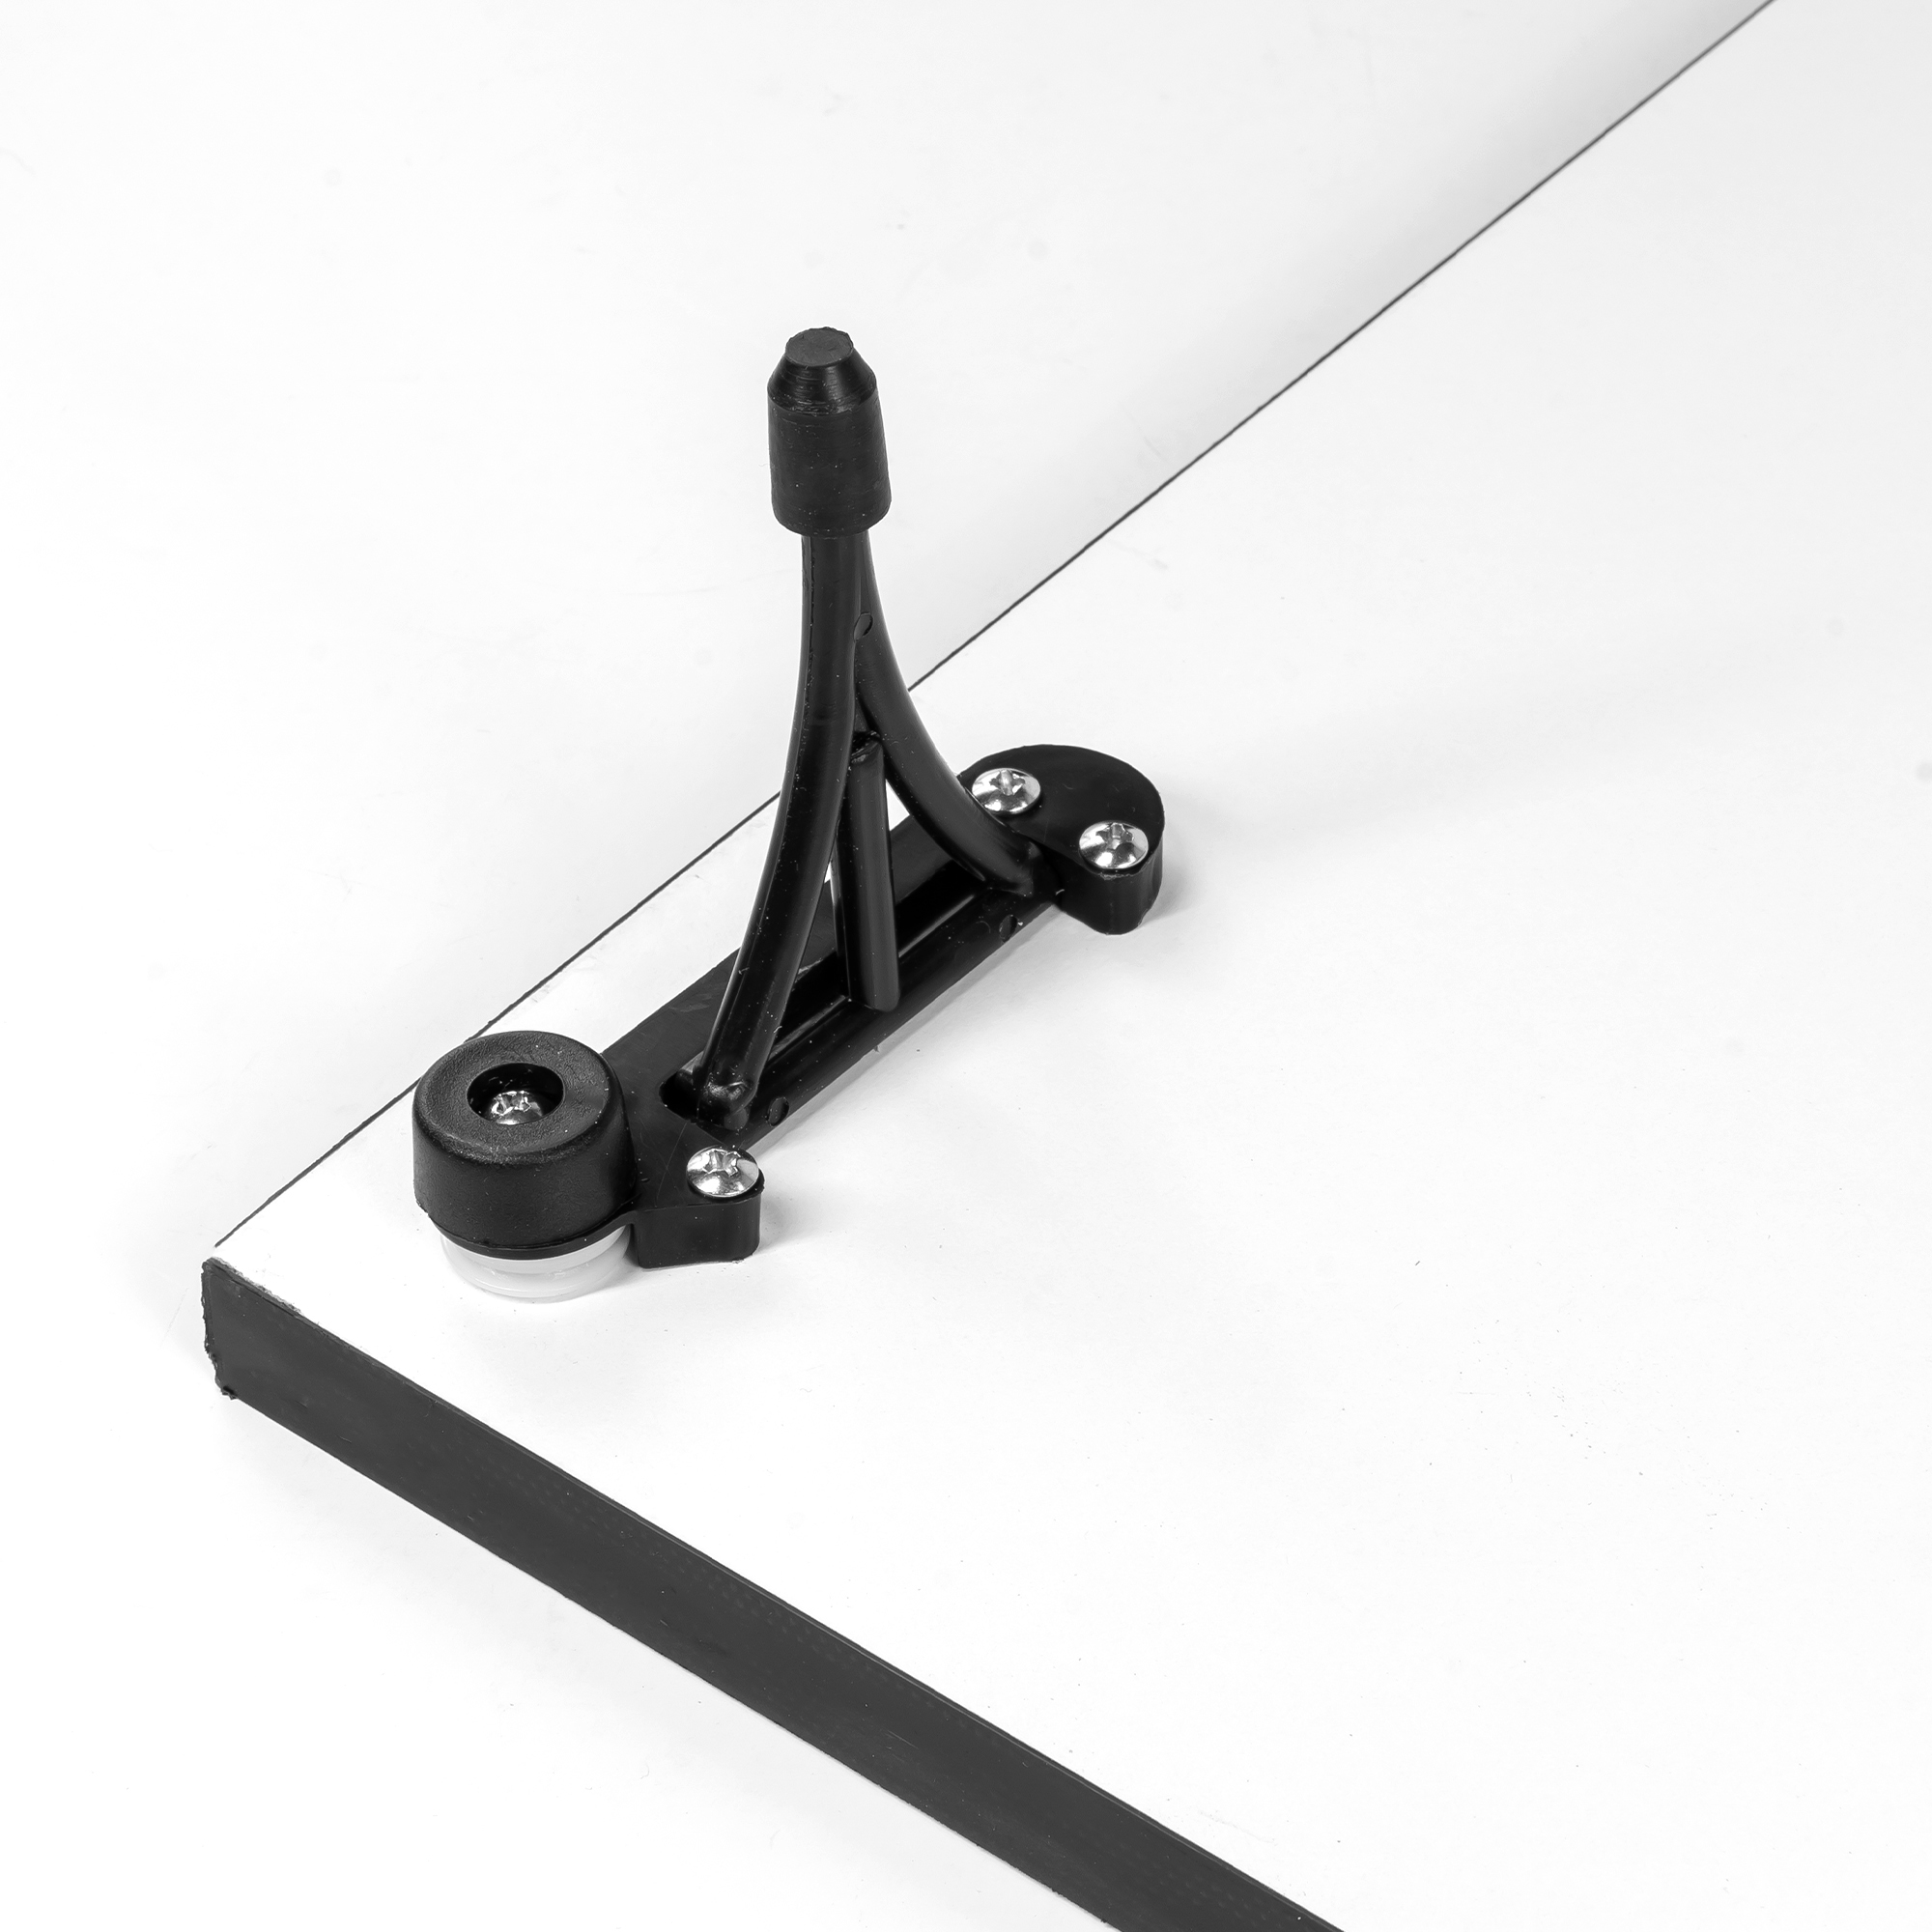 the stp drafting drawing board by pacific arc with legs that bend upright with rubberized shoes to protect your surface and keep it in place.